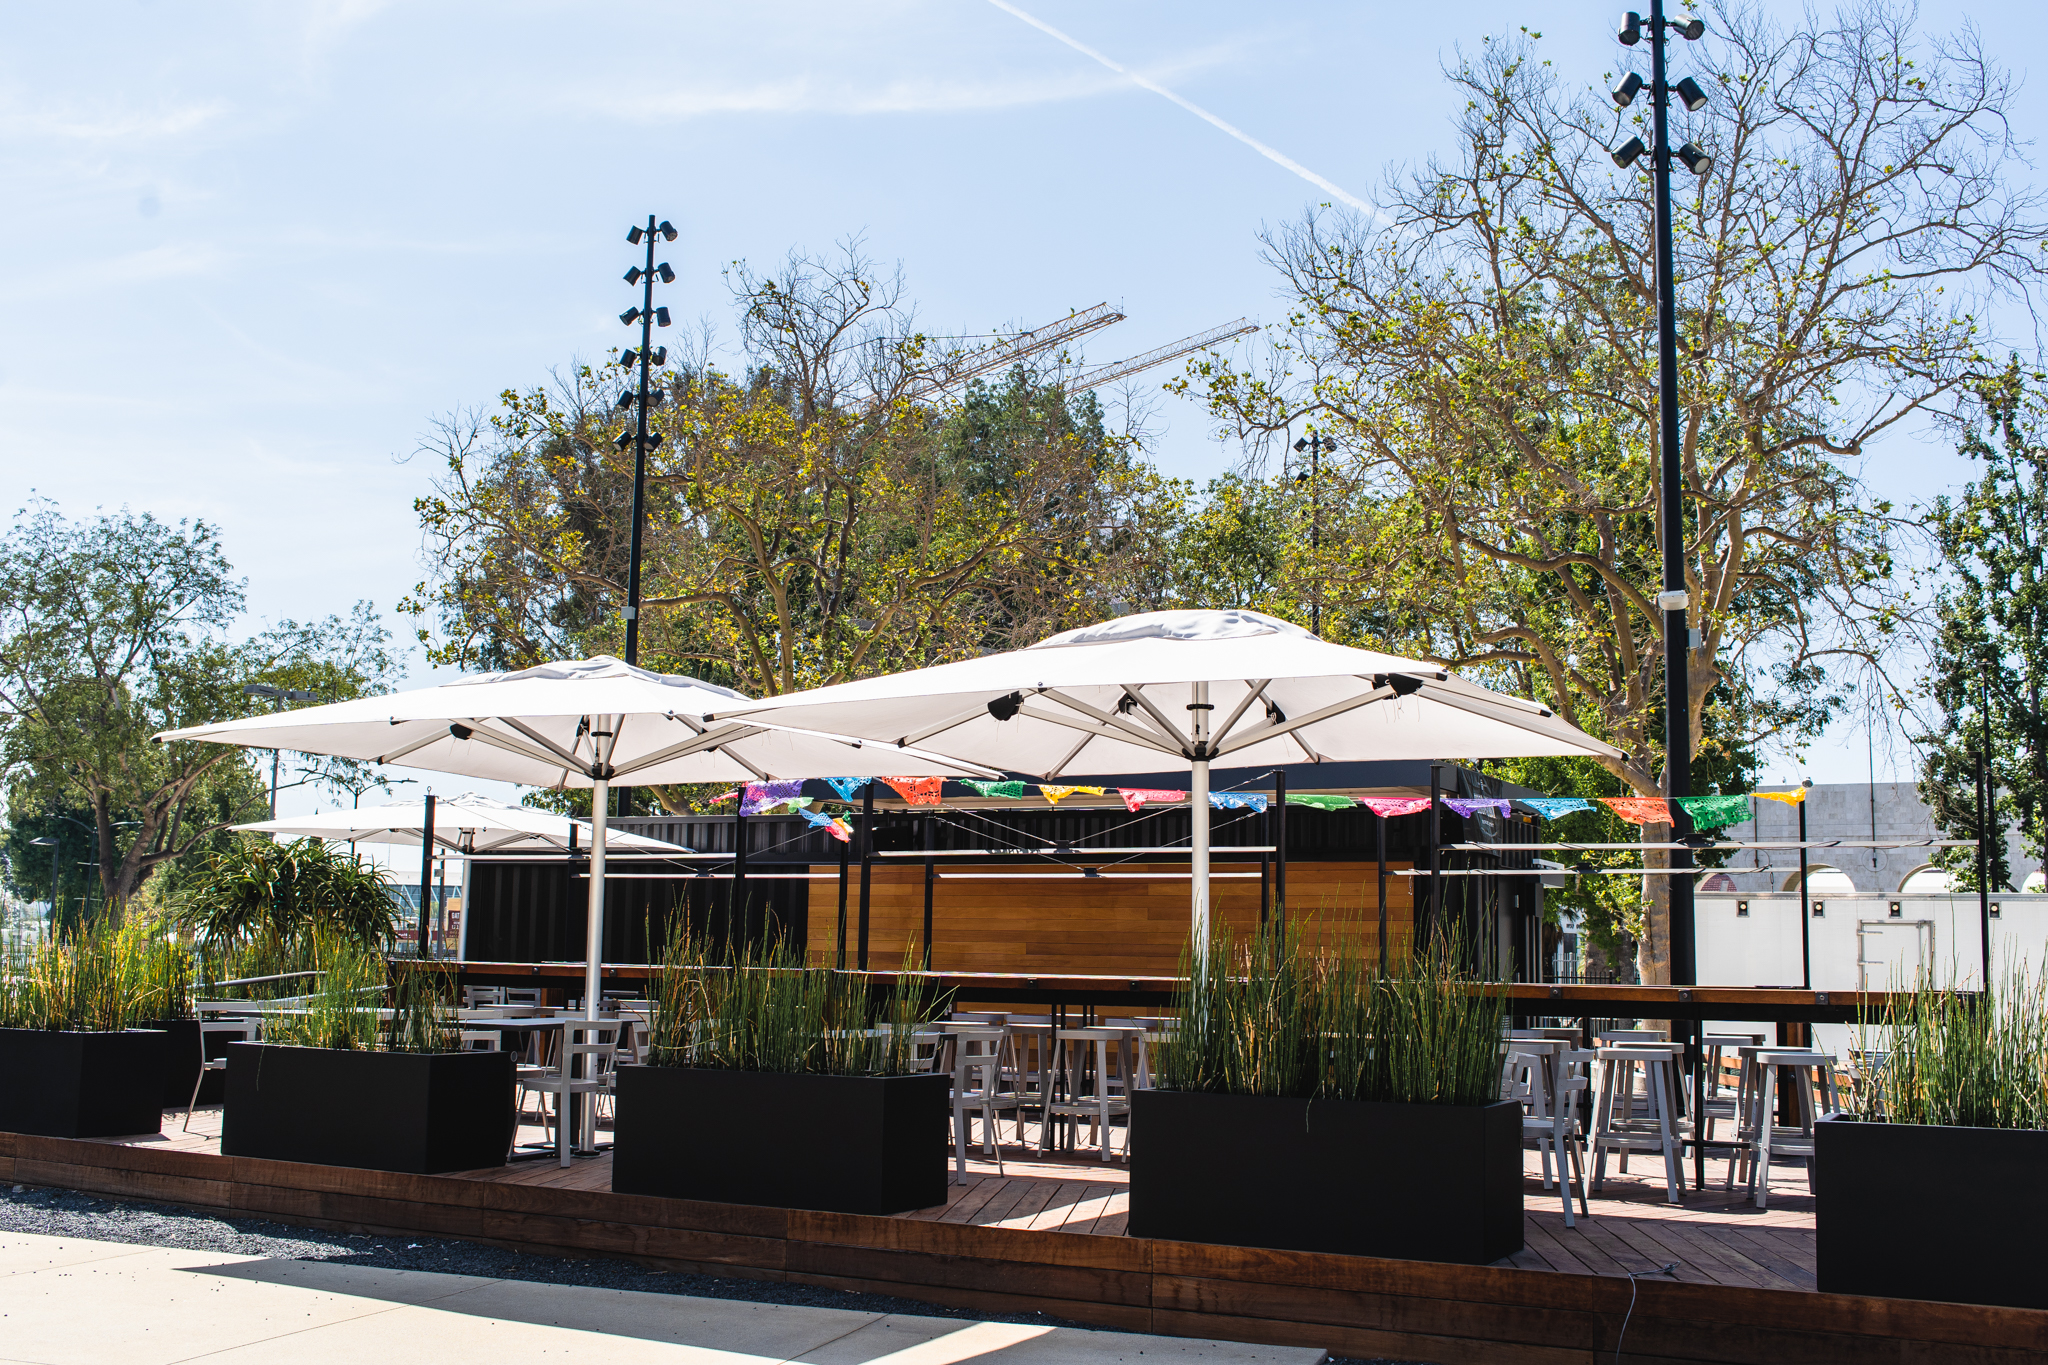 Beer Garden - Enjoy an ice cold craft beer or some soft serve ice cream while enjoying the beautiful atmosphere at the Expo Park campus. On game days, this patio becomes the place to be! Bring a group of friends or coworkers and create your own party at our outdoor patio.